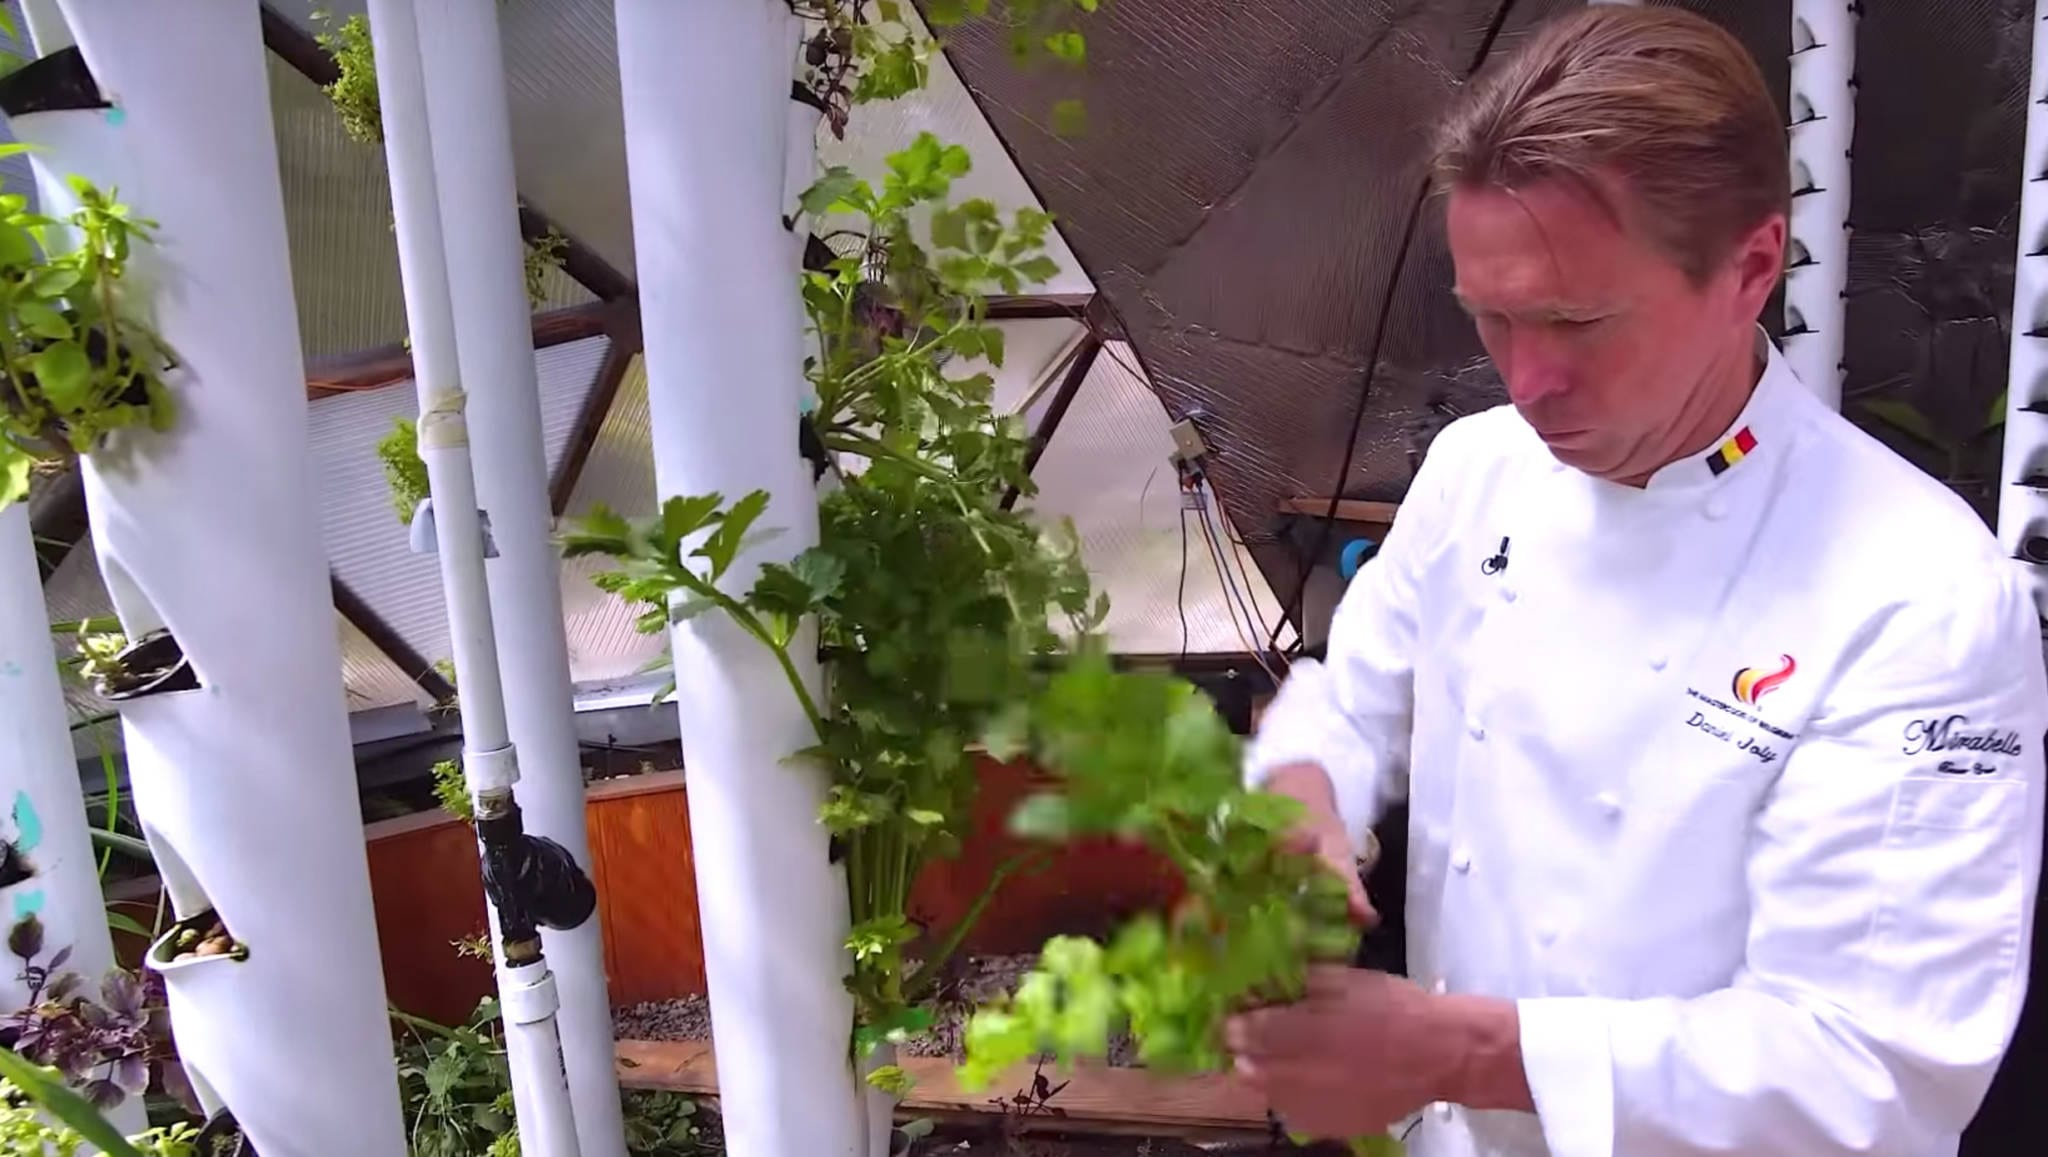 chef-picking-herbs